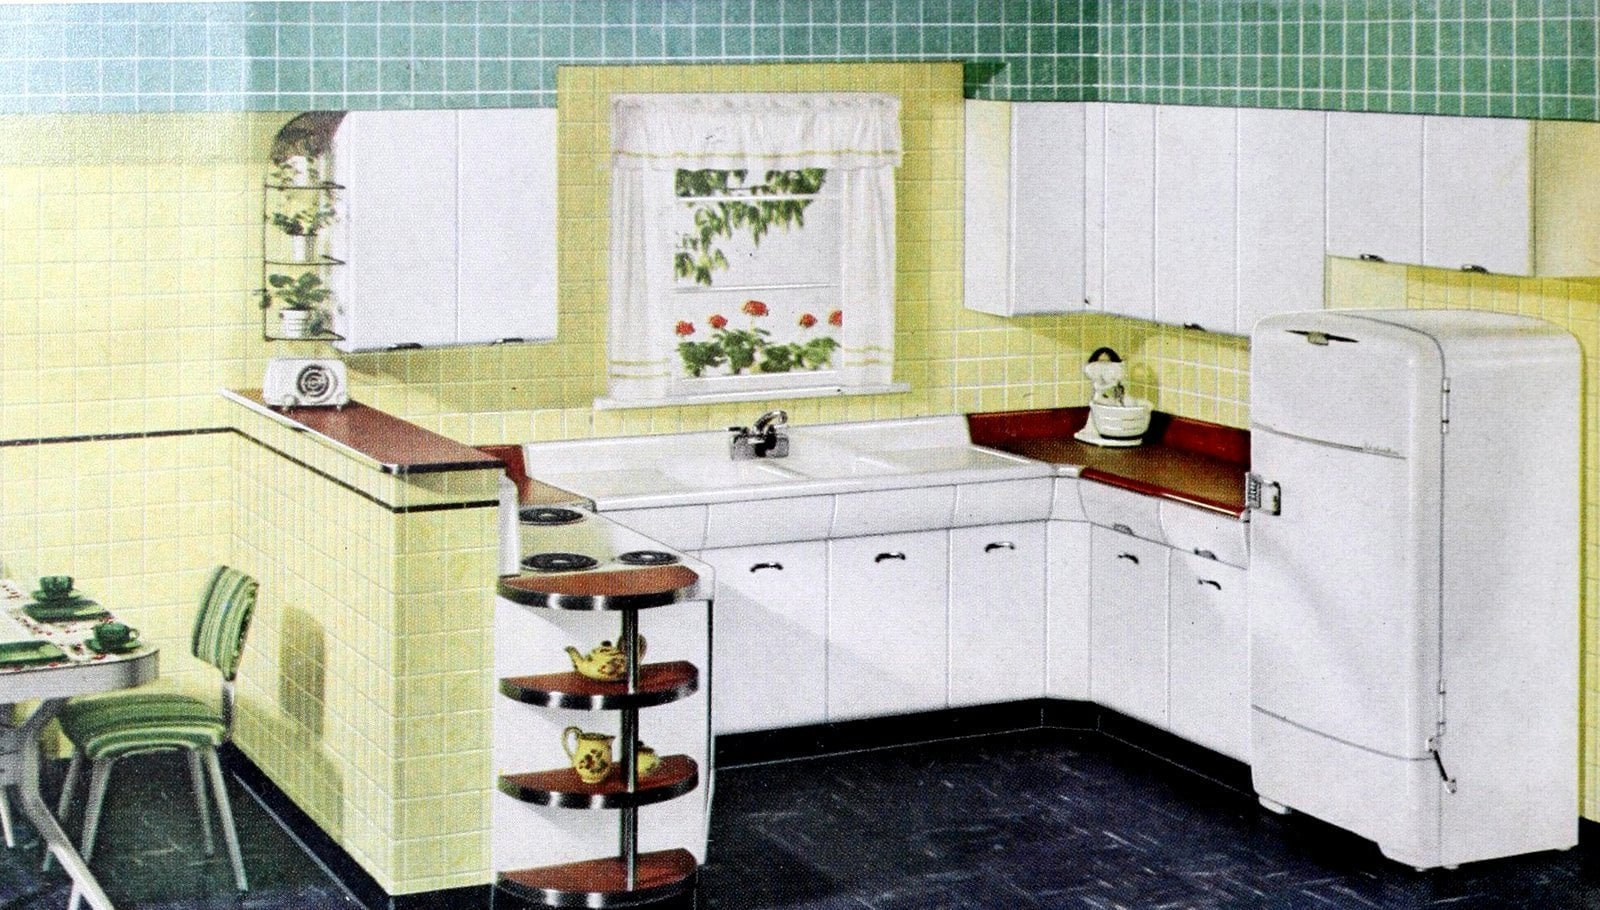 Simple 1950s kitchen design with yellow and green tile walls